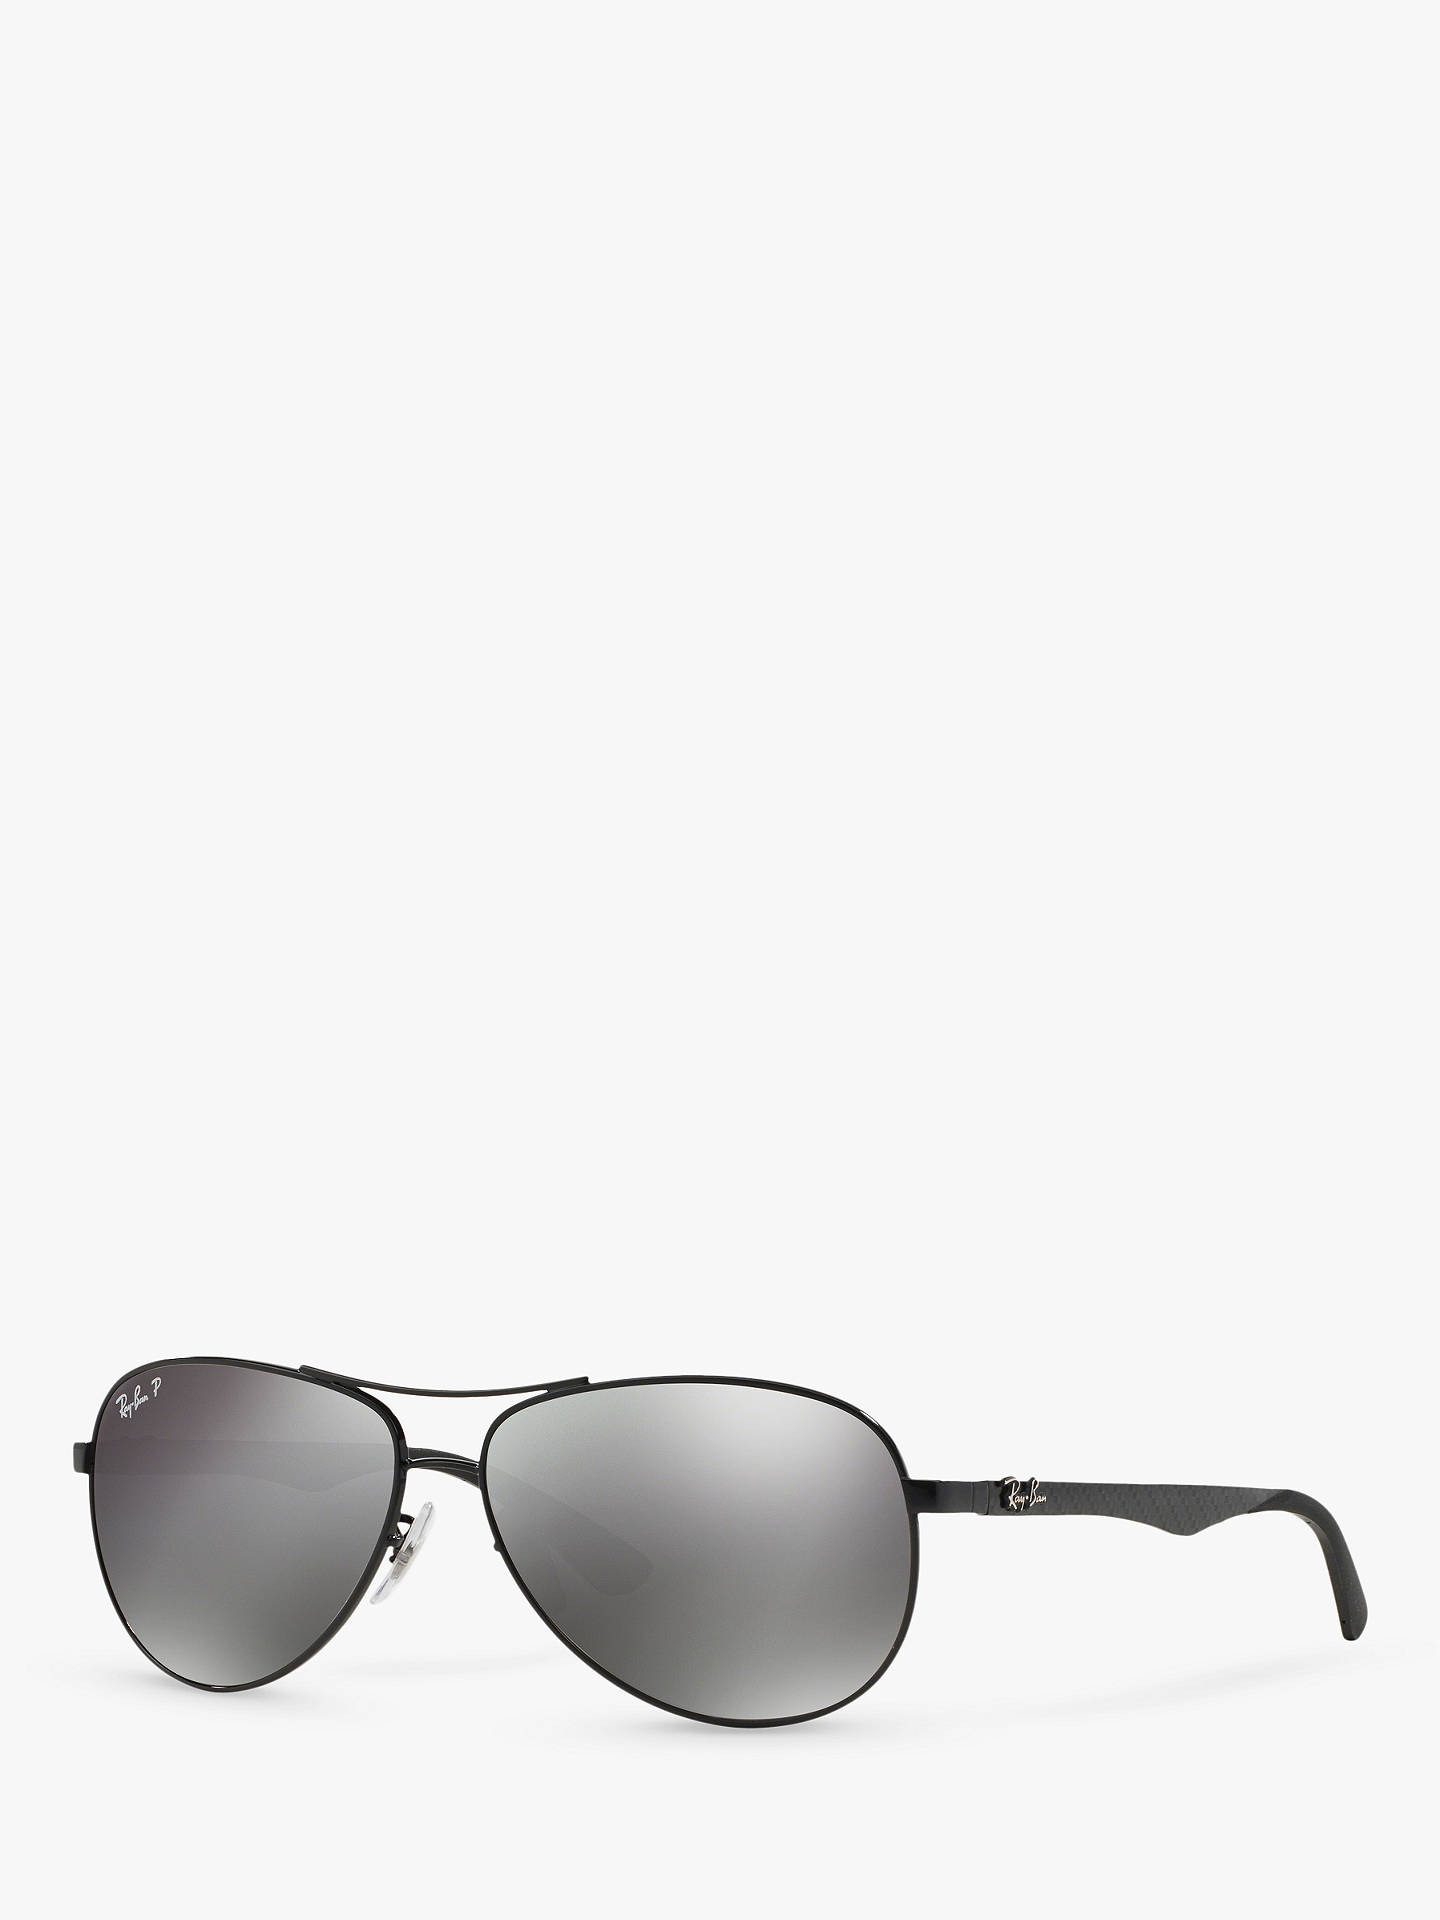 fbc9bf03939 Ray-Ban RB8313 Polarised Aviator Sunglasses at John Lewis   Partners